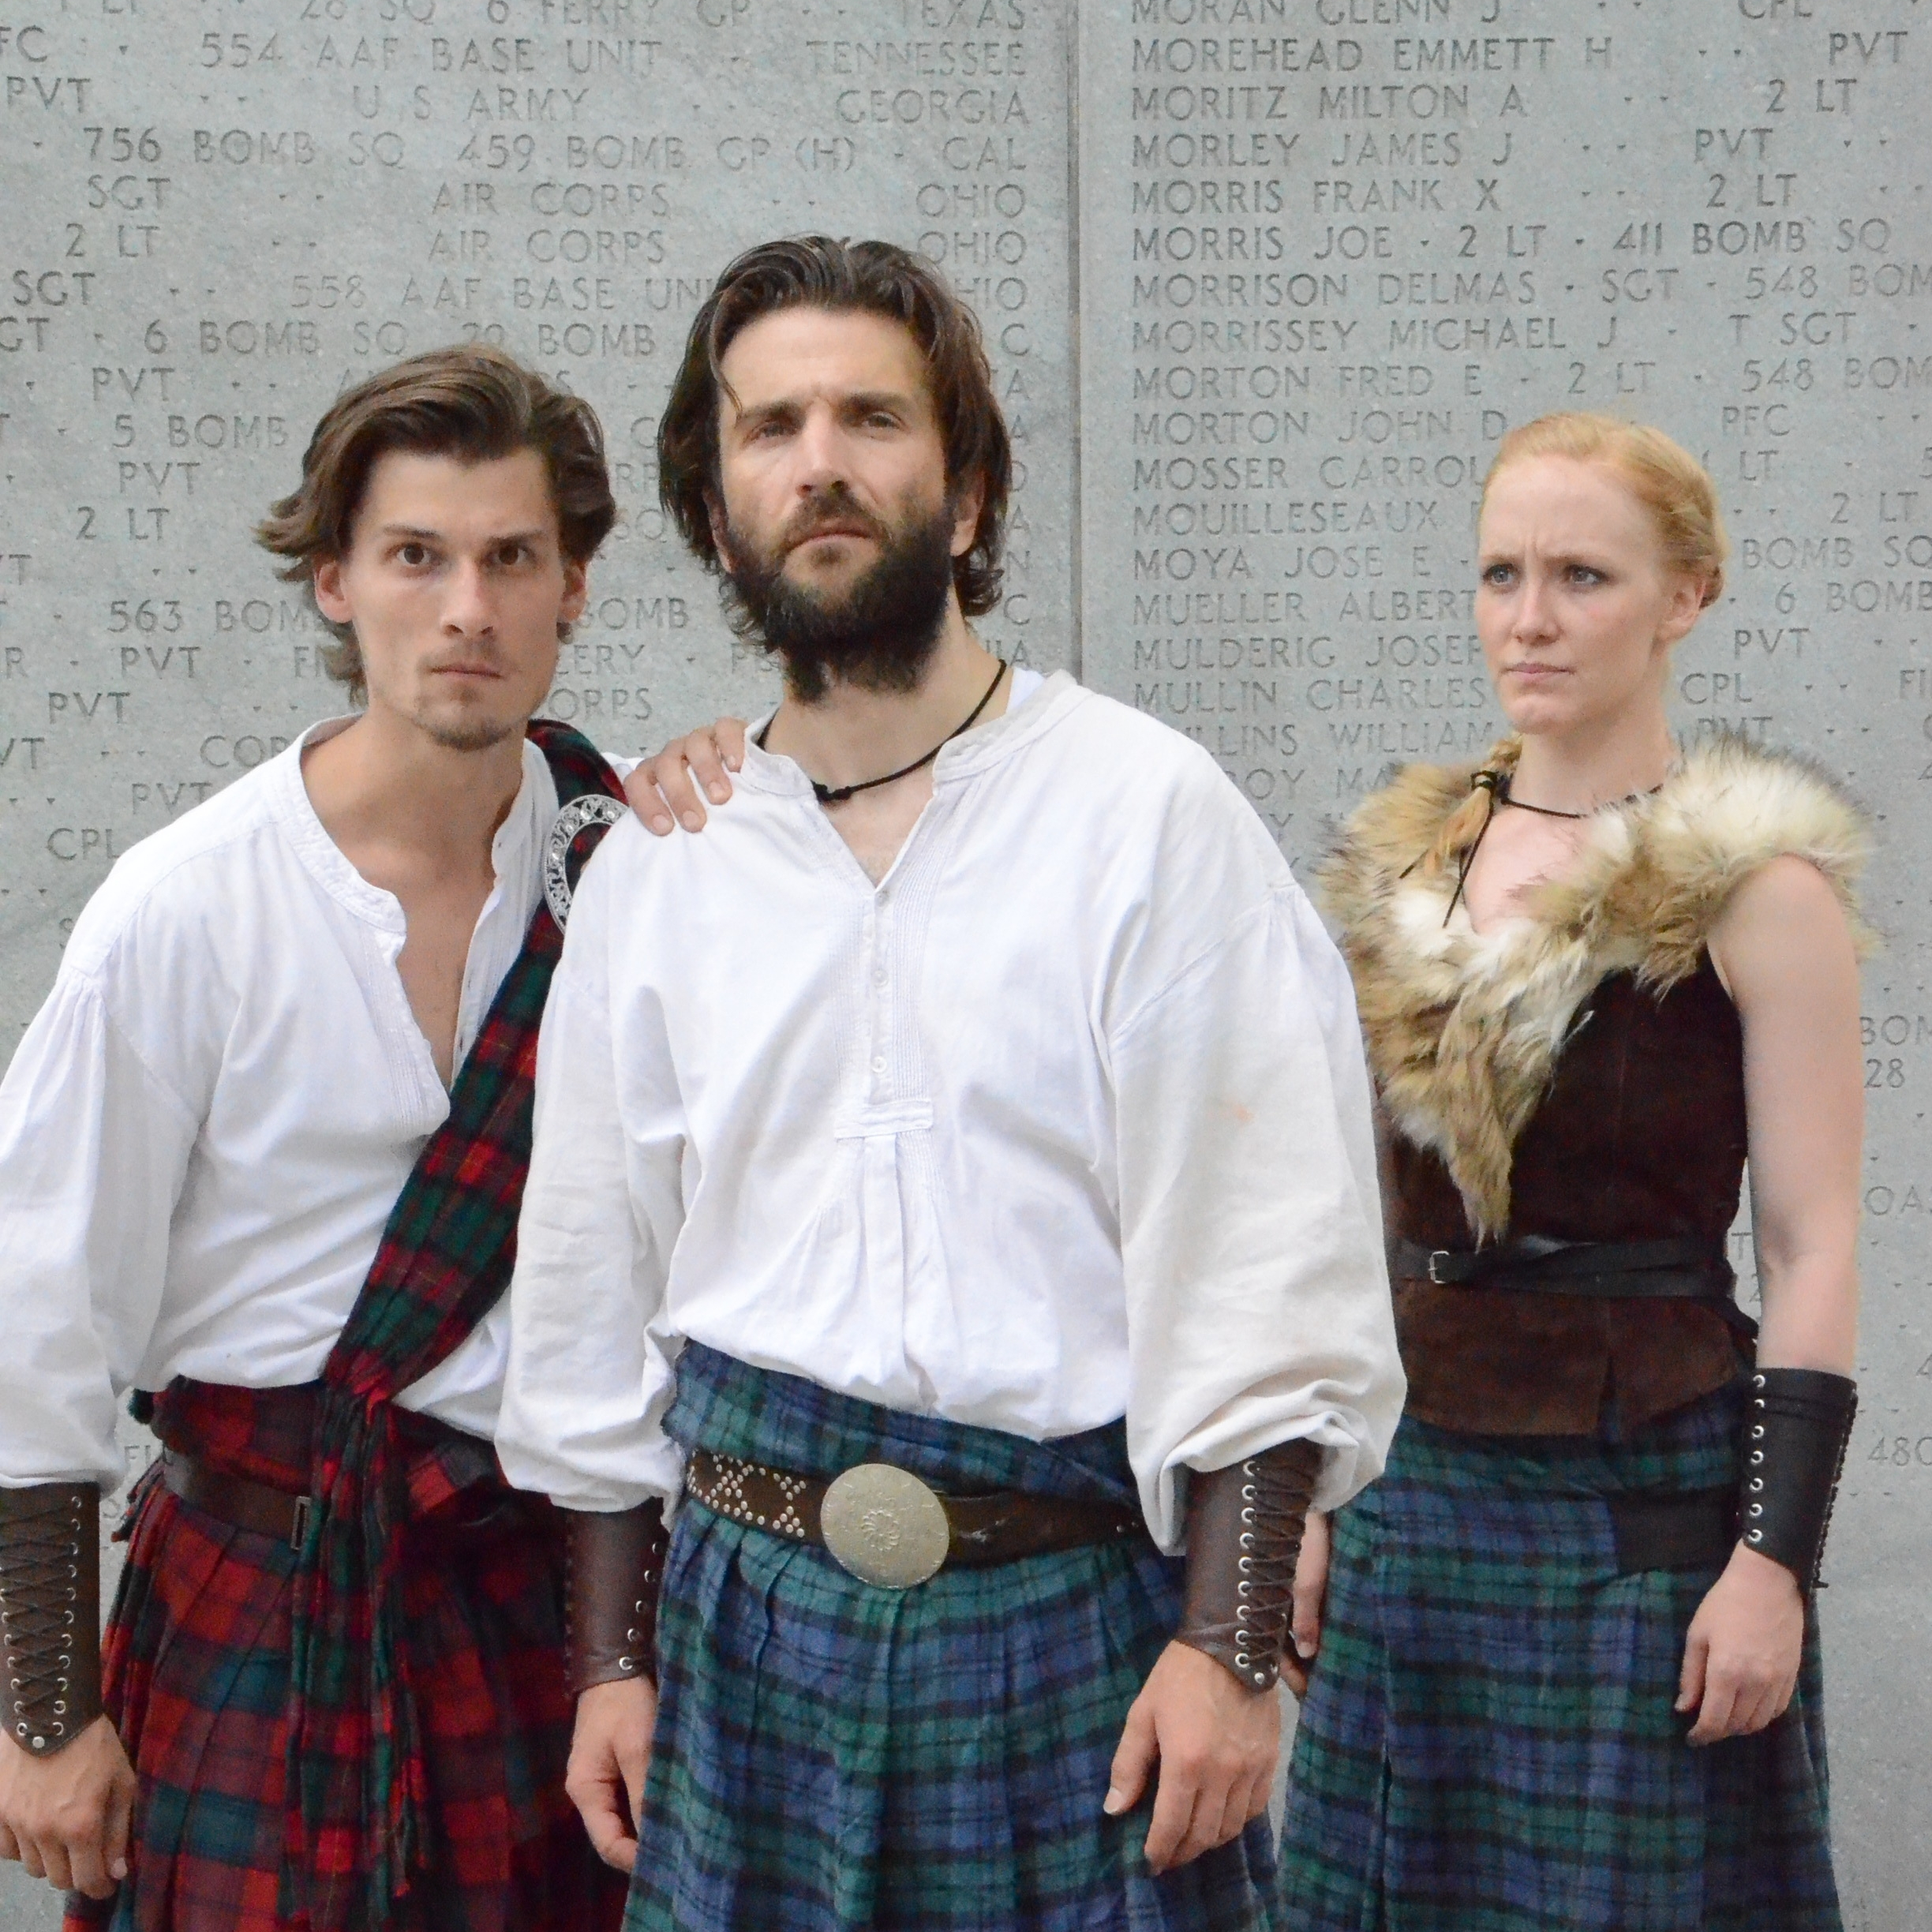 New York Classical Shakespeare in the park Macbeth